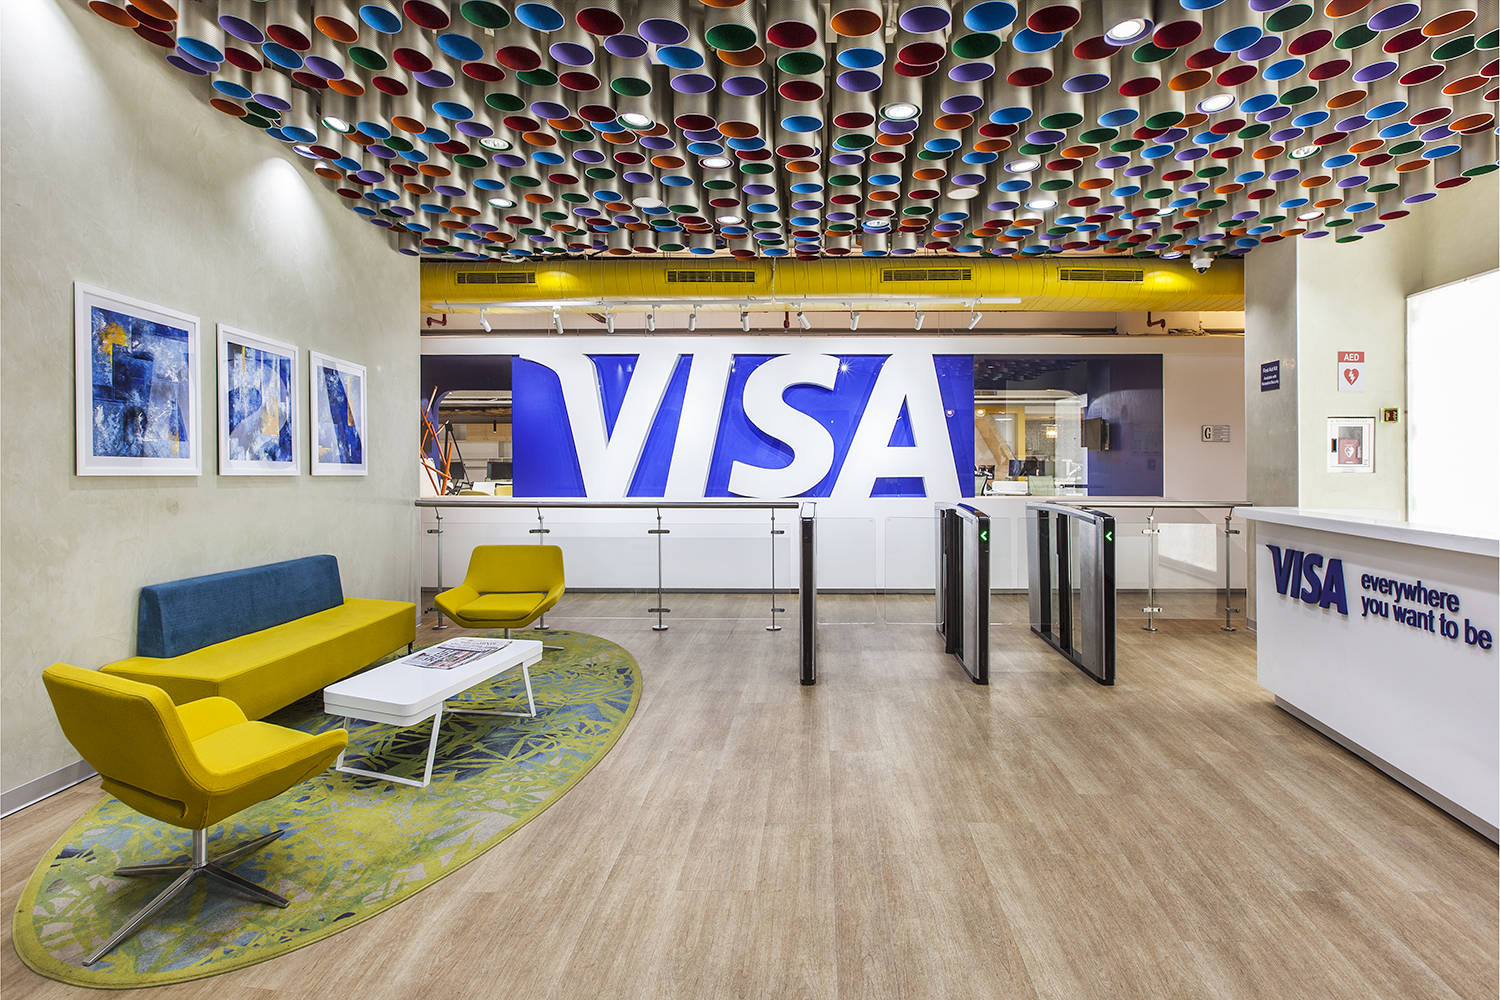 VISA Reception